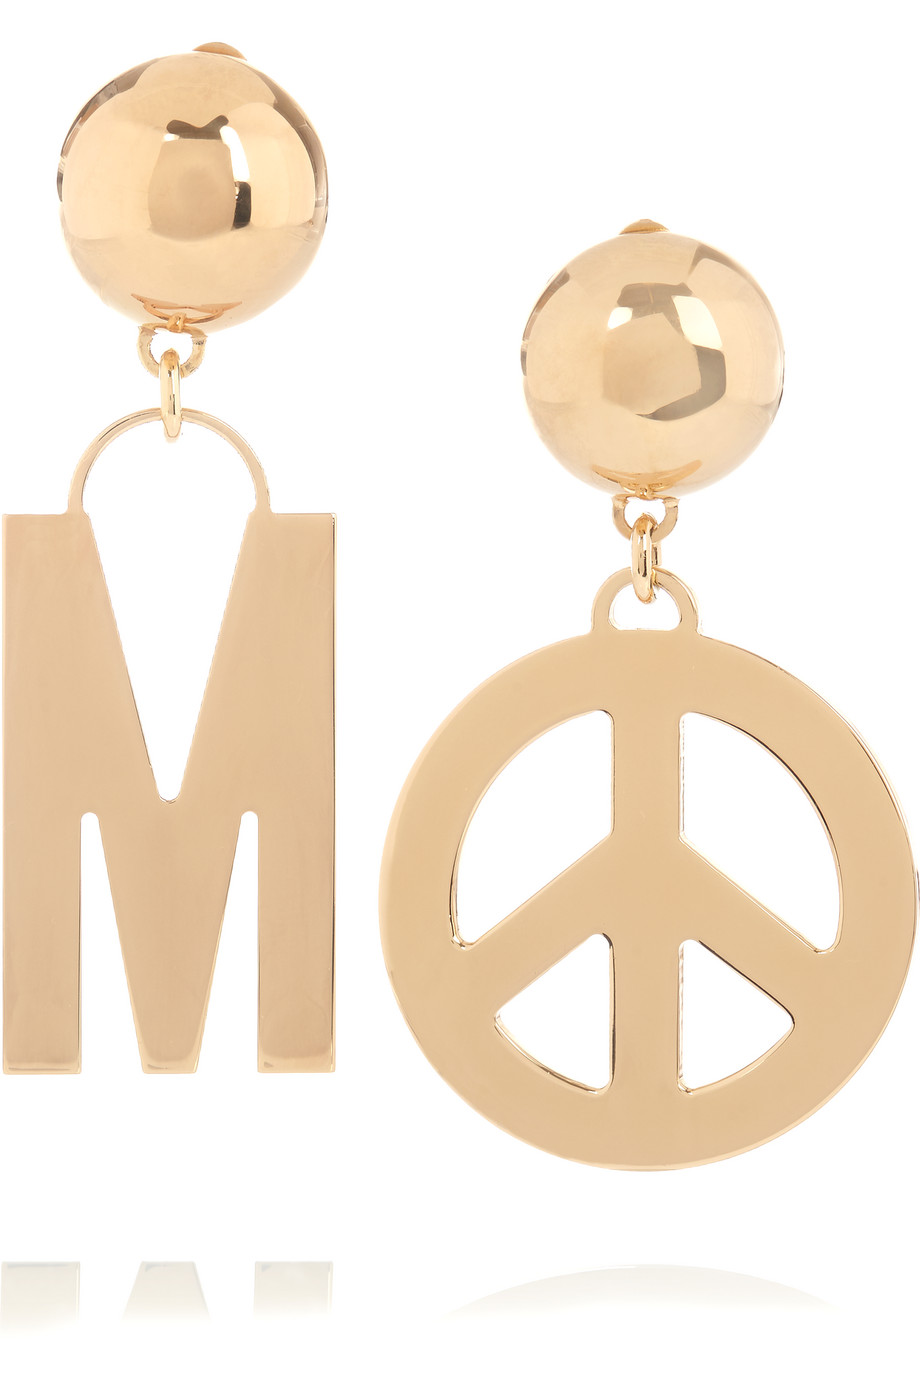 Moschino Gold-Plated Clip Earrings, Women's